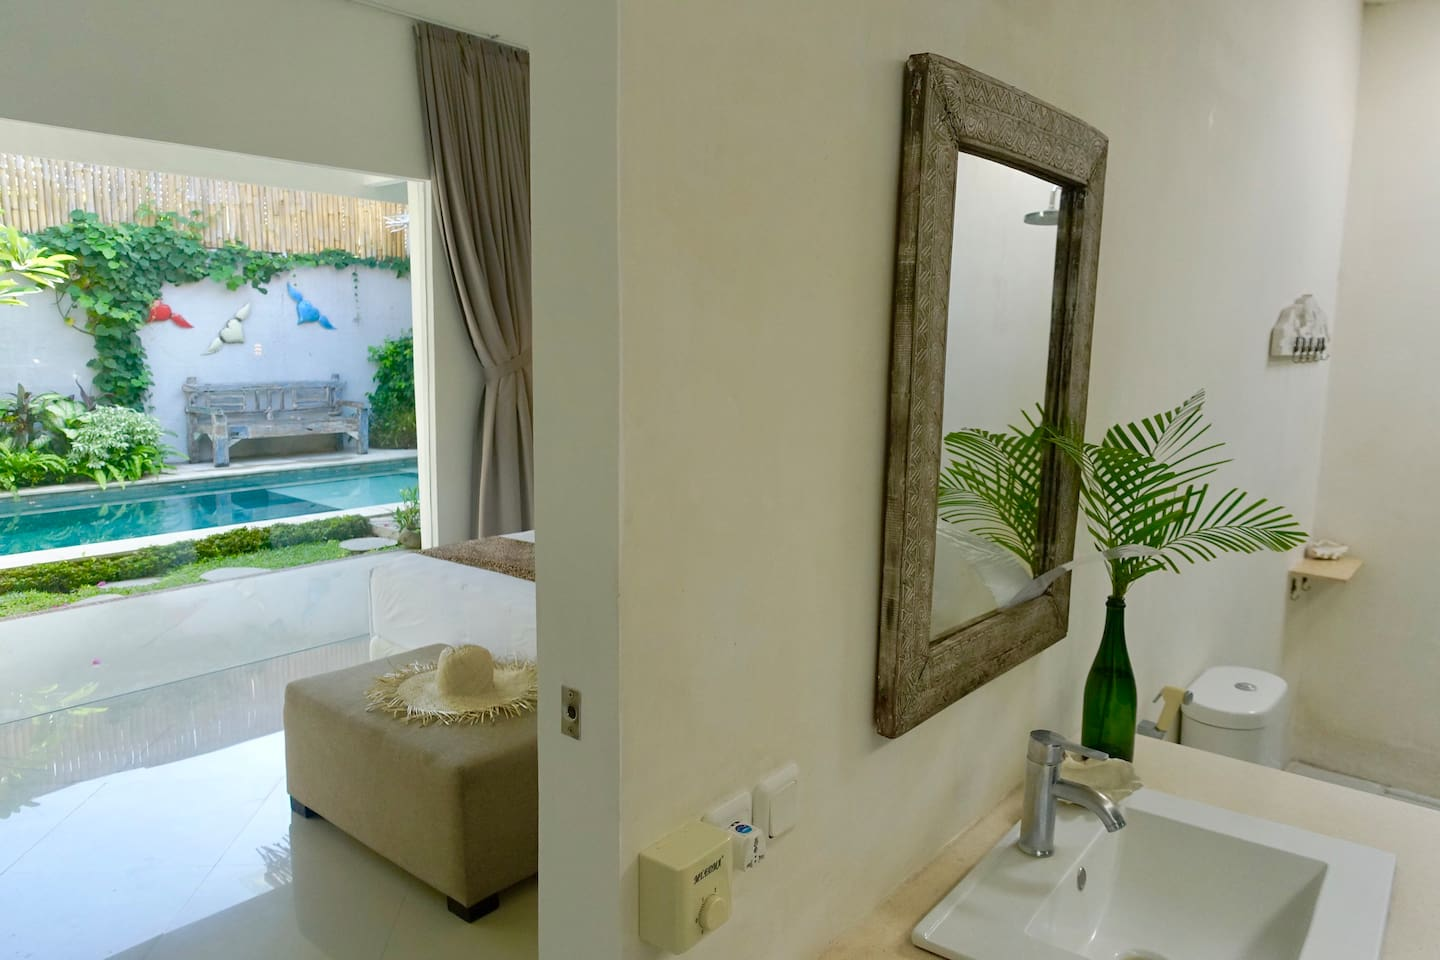 Meuble Salle De Bain Bath And Kitchen ~ Lux King Room Ac Smart Tv Wifi Walk To Beach Villas Louer